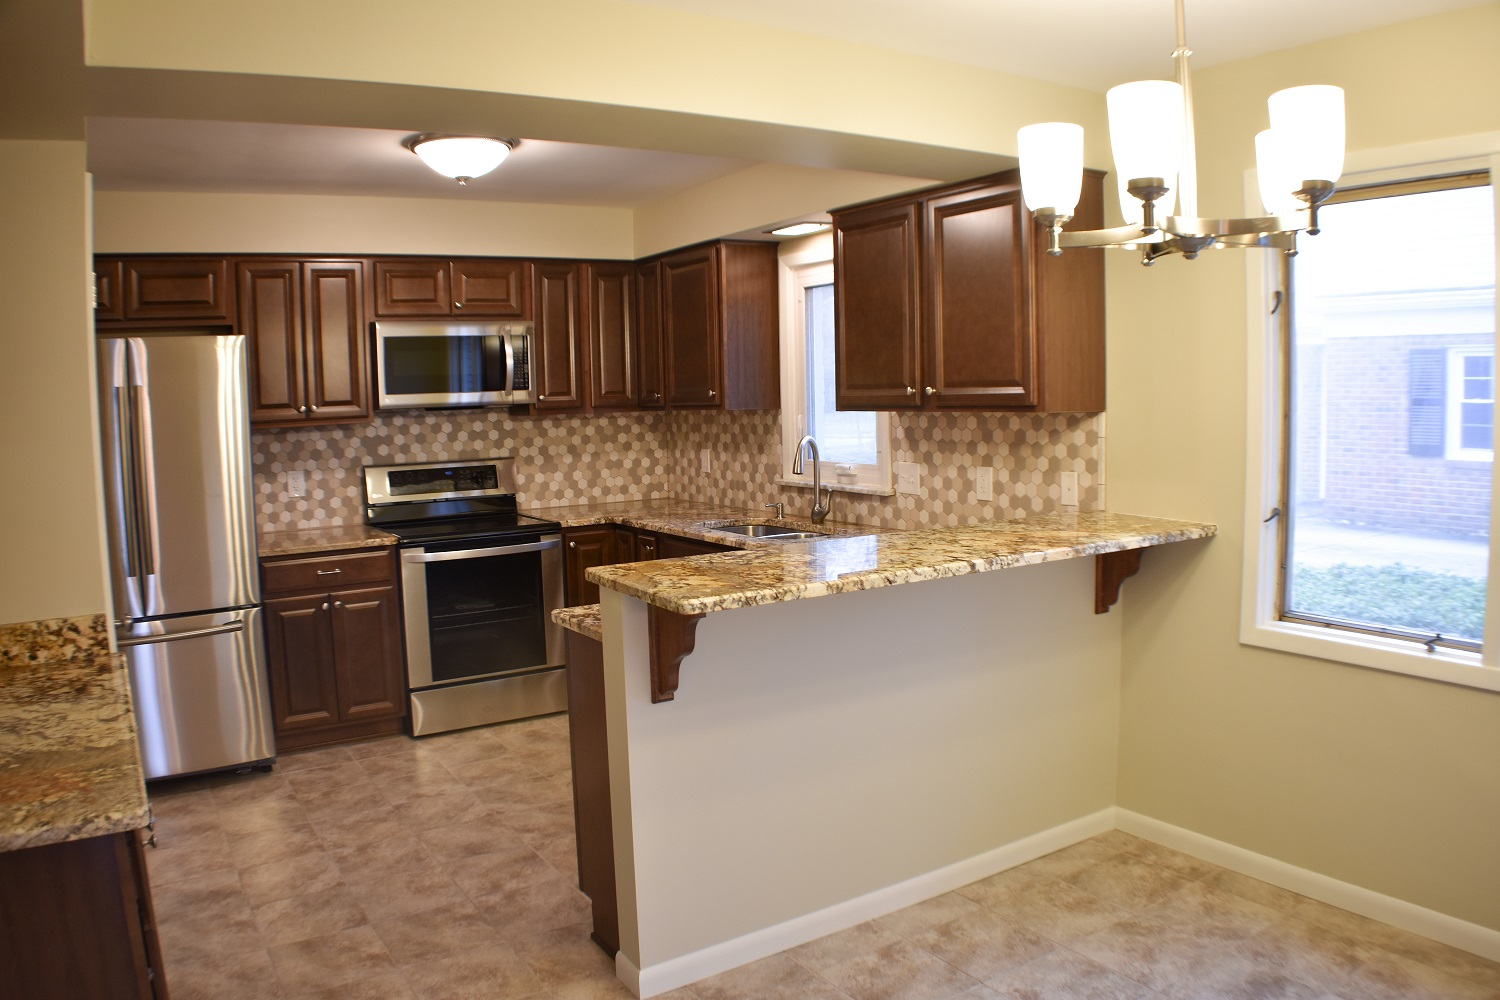 After Kitchen Renovation, Call (440)285-8516 for More Information